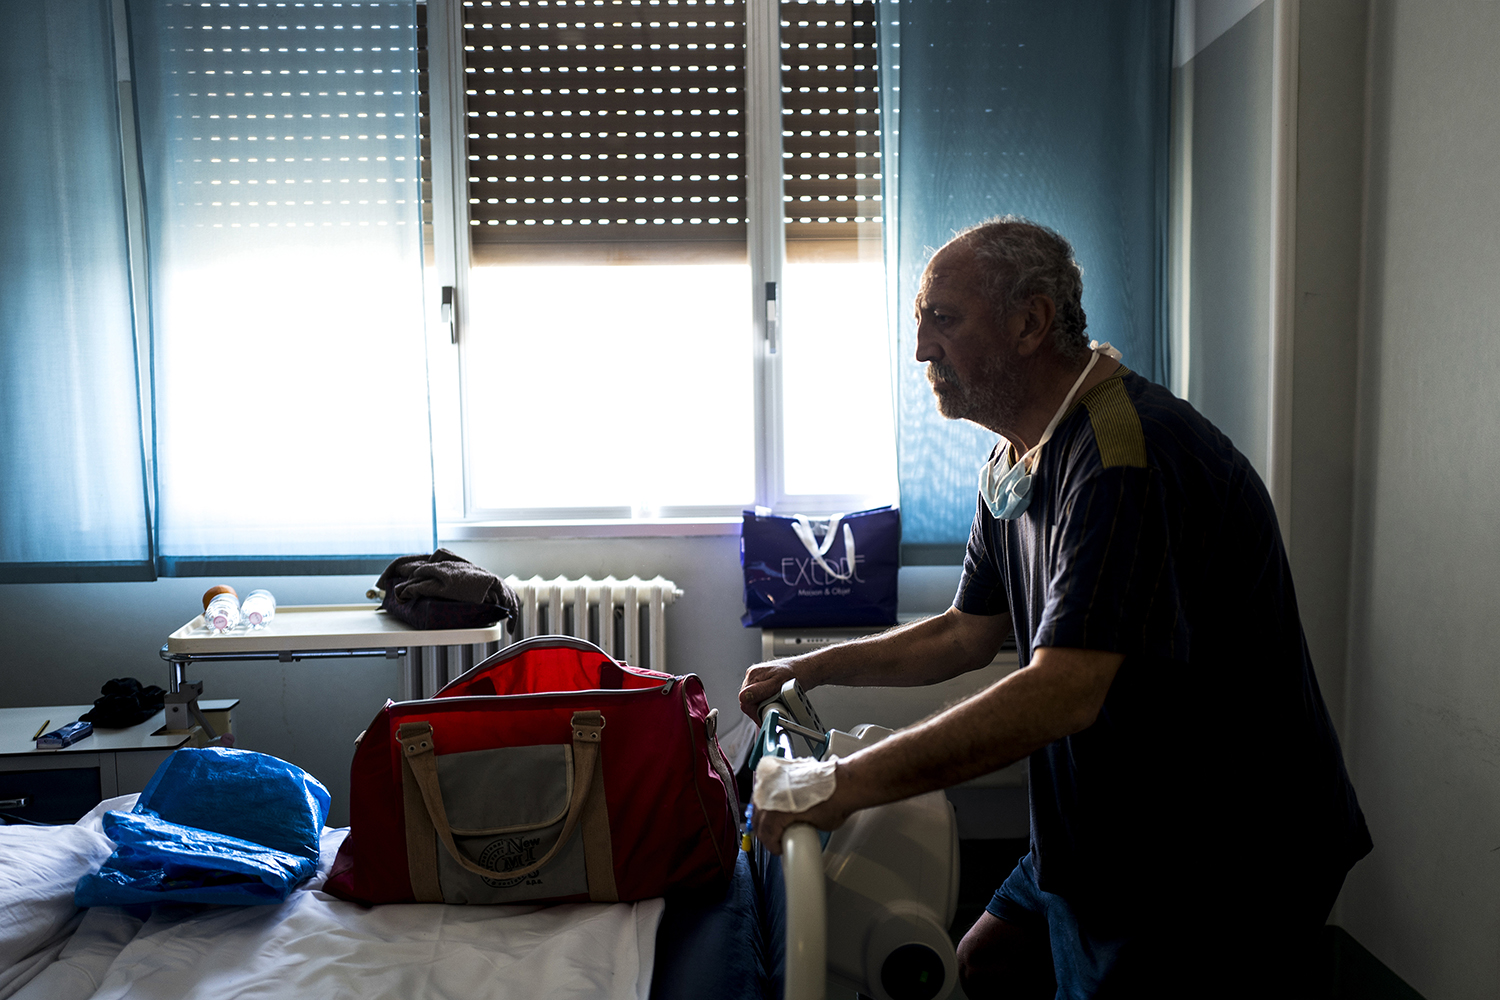 Maurizio Melchiorre trains to regain his strength as he prepares to return home after 33 days at Santo Spirito Hospital on April 27. Melchiorre had to be intubated twice because his lungs were not able to ventilate on their own.